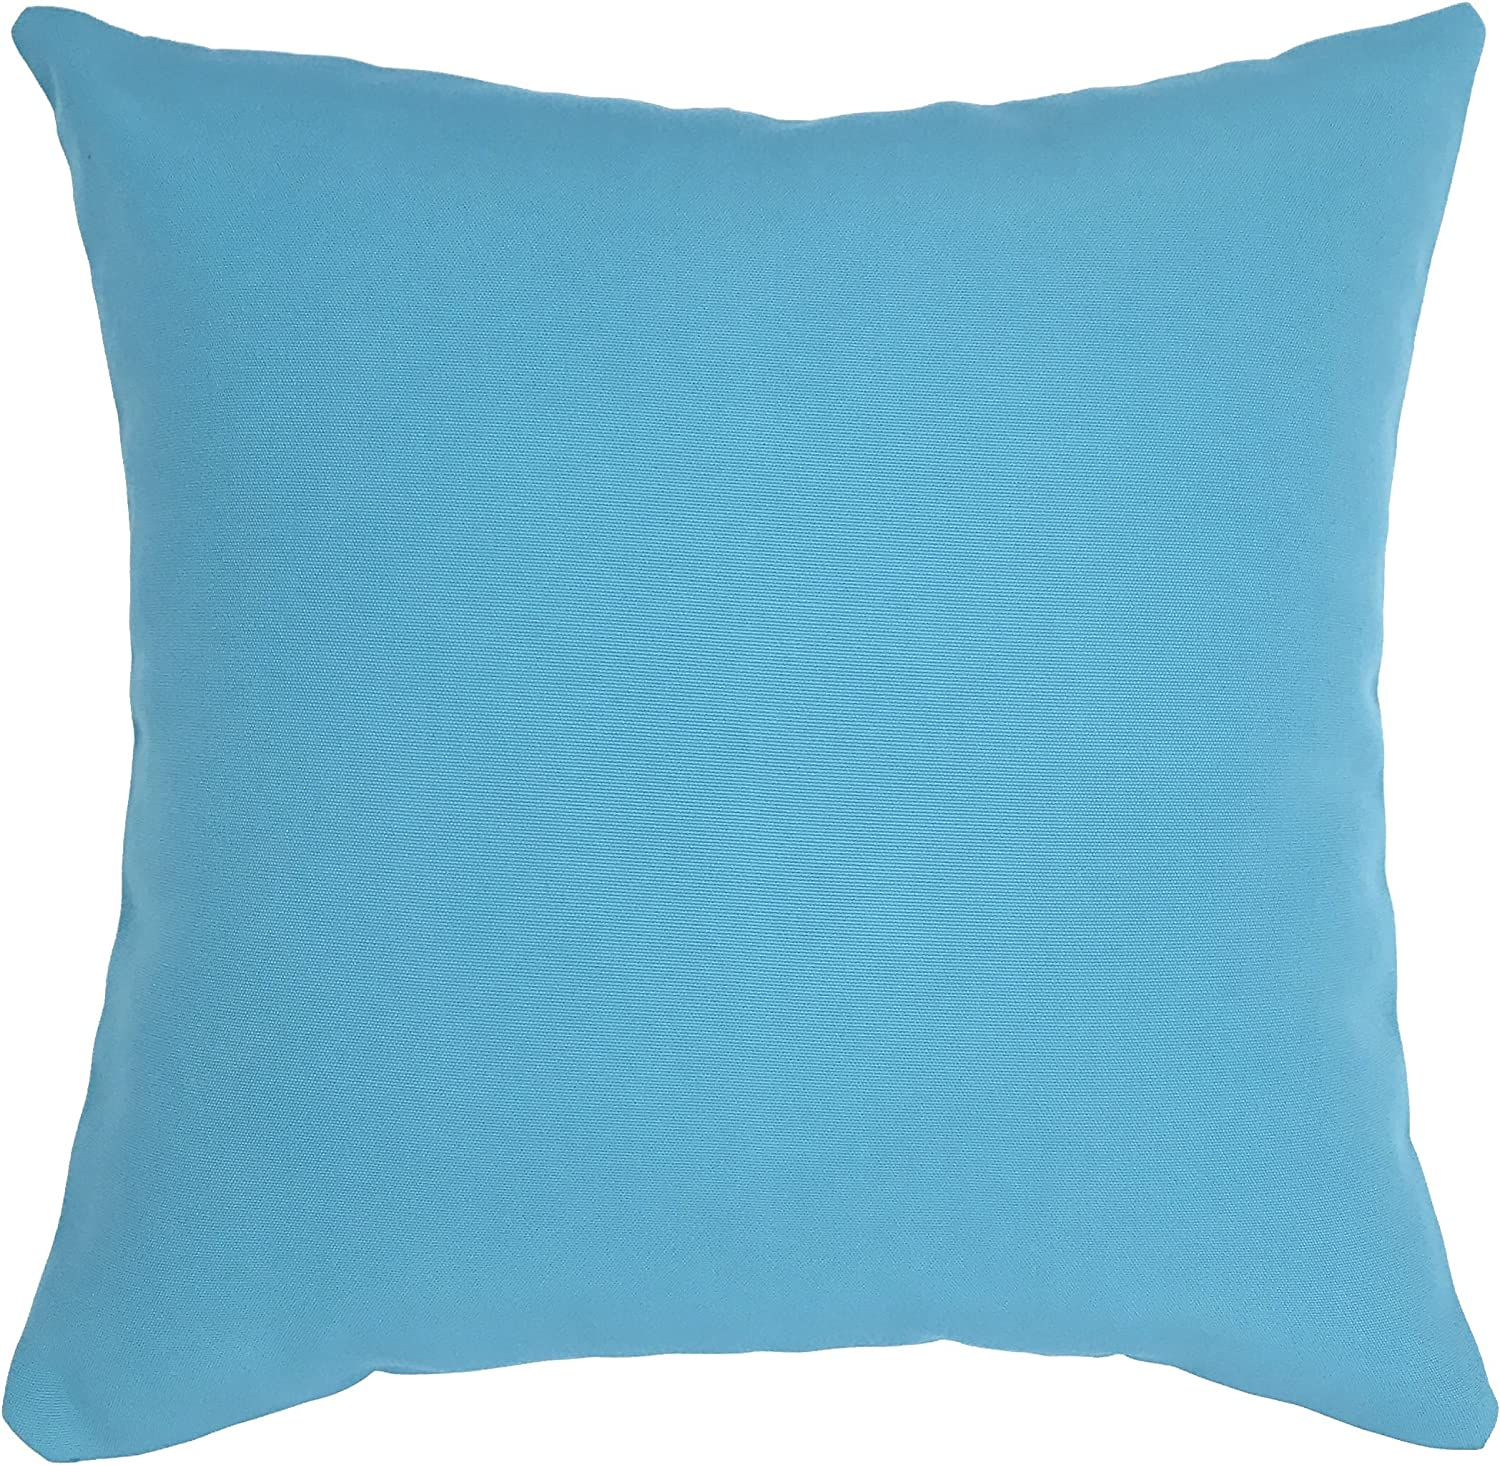 Do4U 320g Thick Polyester Fiber Waterproof Throw Pillow Case Cushion Cover for Travel, Indoor, Outdoor, Rattan Sofa, Bed 18 x 18 inches(Turquoise)